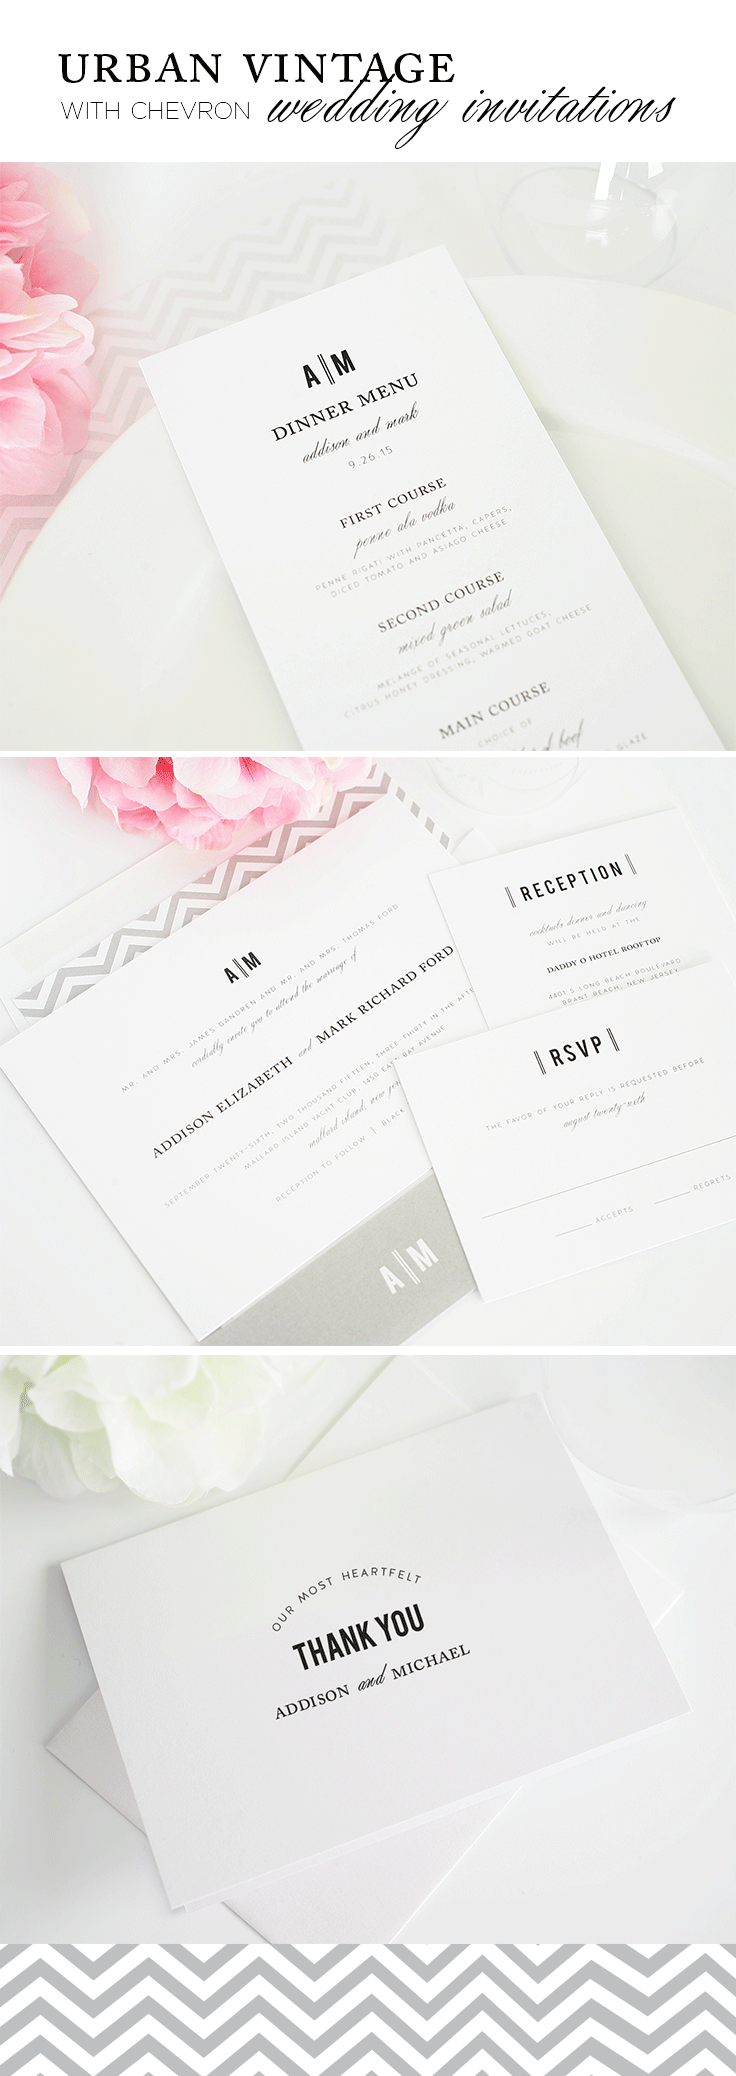 Urban Vintage Wedding Invitations with Chevron Envelope Liner